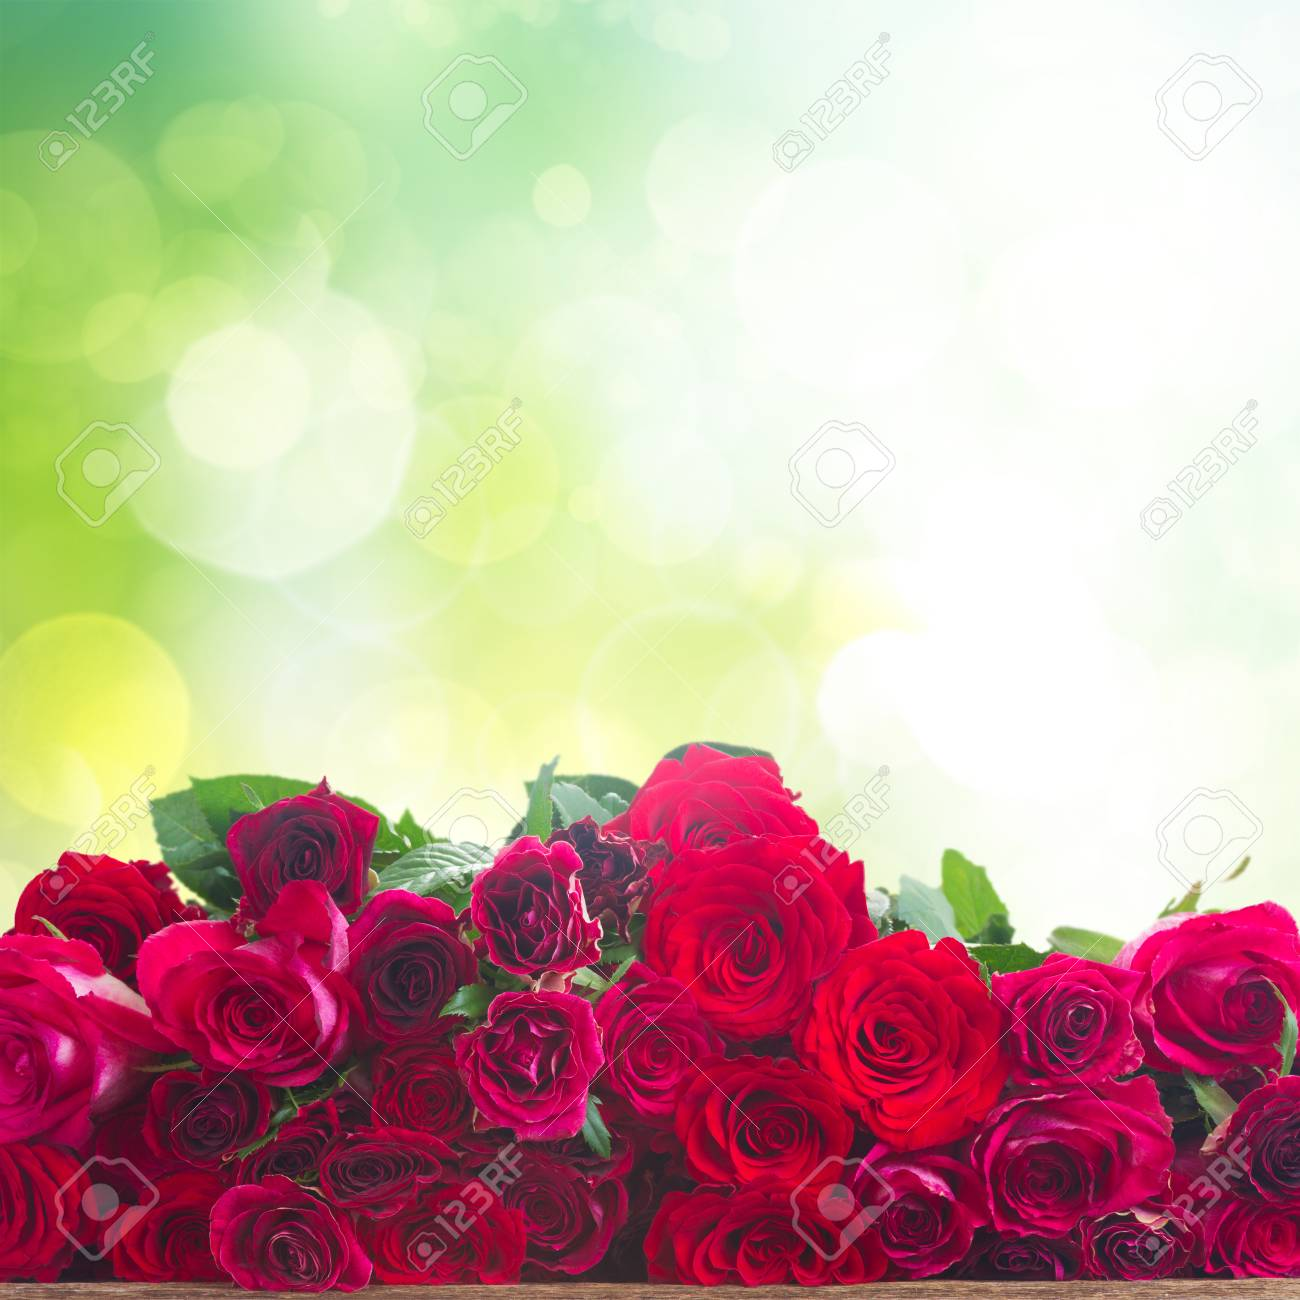 Red And Pink Roses Border On Wooden Table Over Green Garden Background Stock Photo